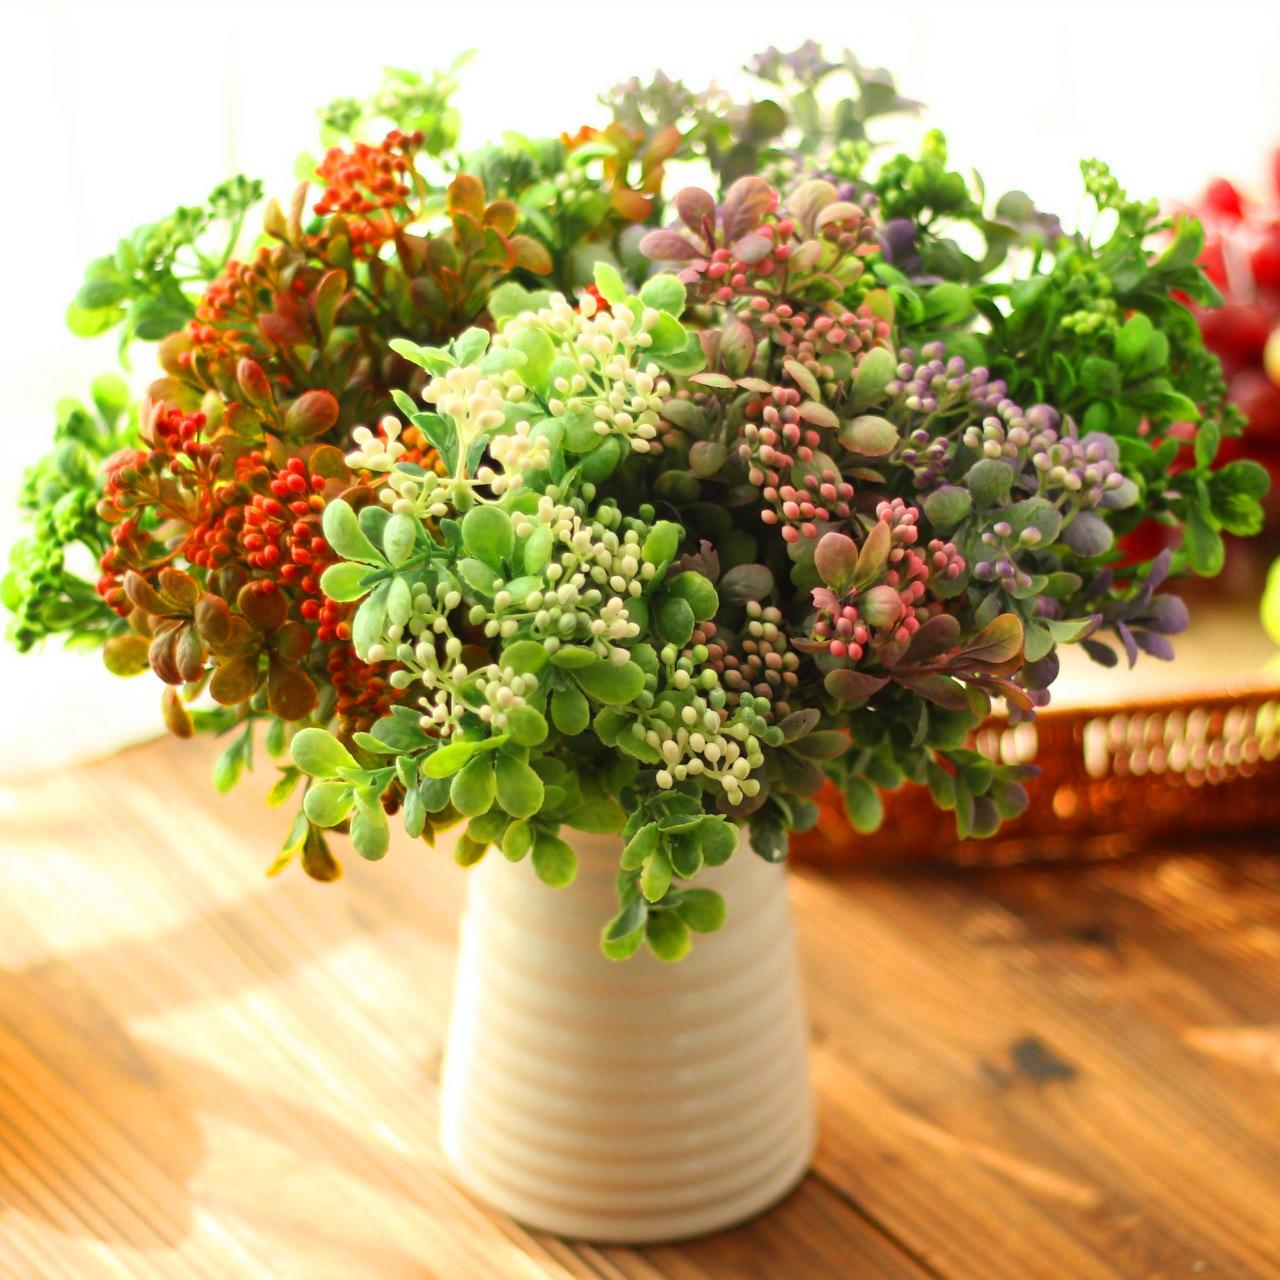 Artificial flowers with small berries plastic flower floral for home artificial flowers with small berries plastic flower floral for home and desk decoration diy use artificial flowers plastic flower home decoration online izmirmasajfo Choice Image